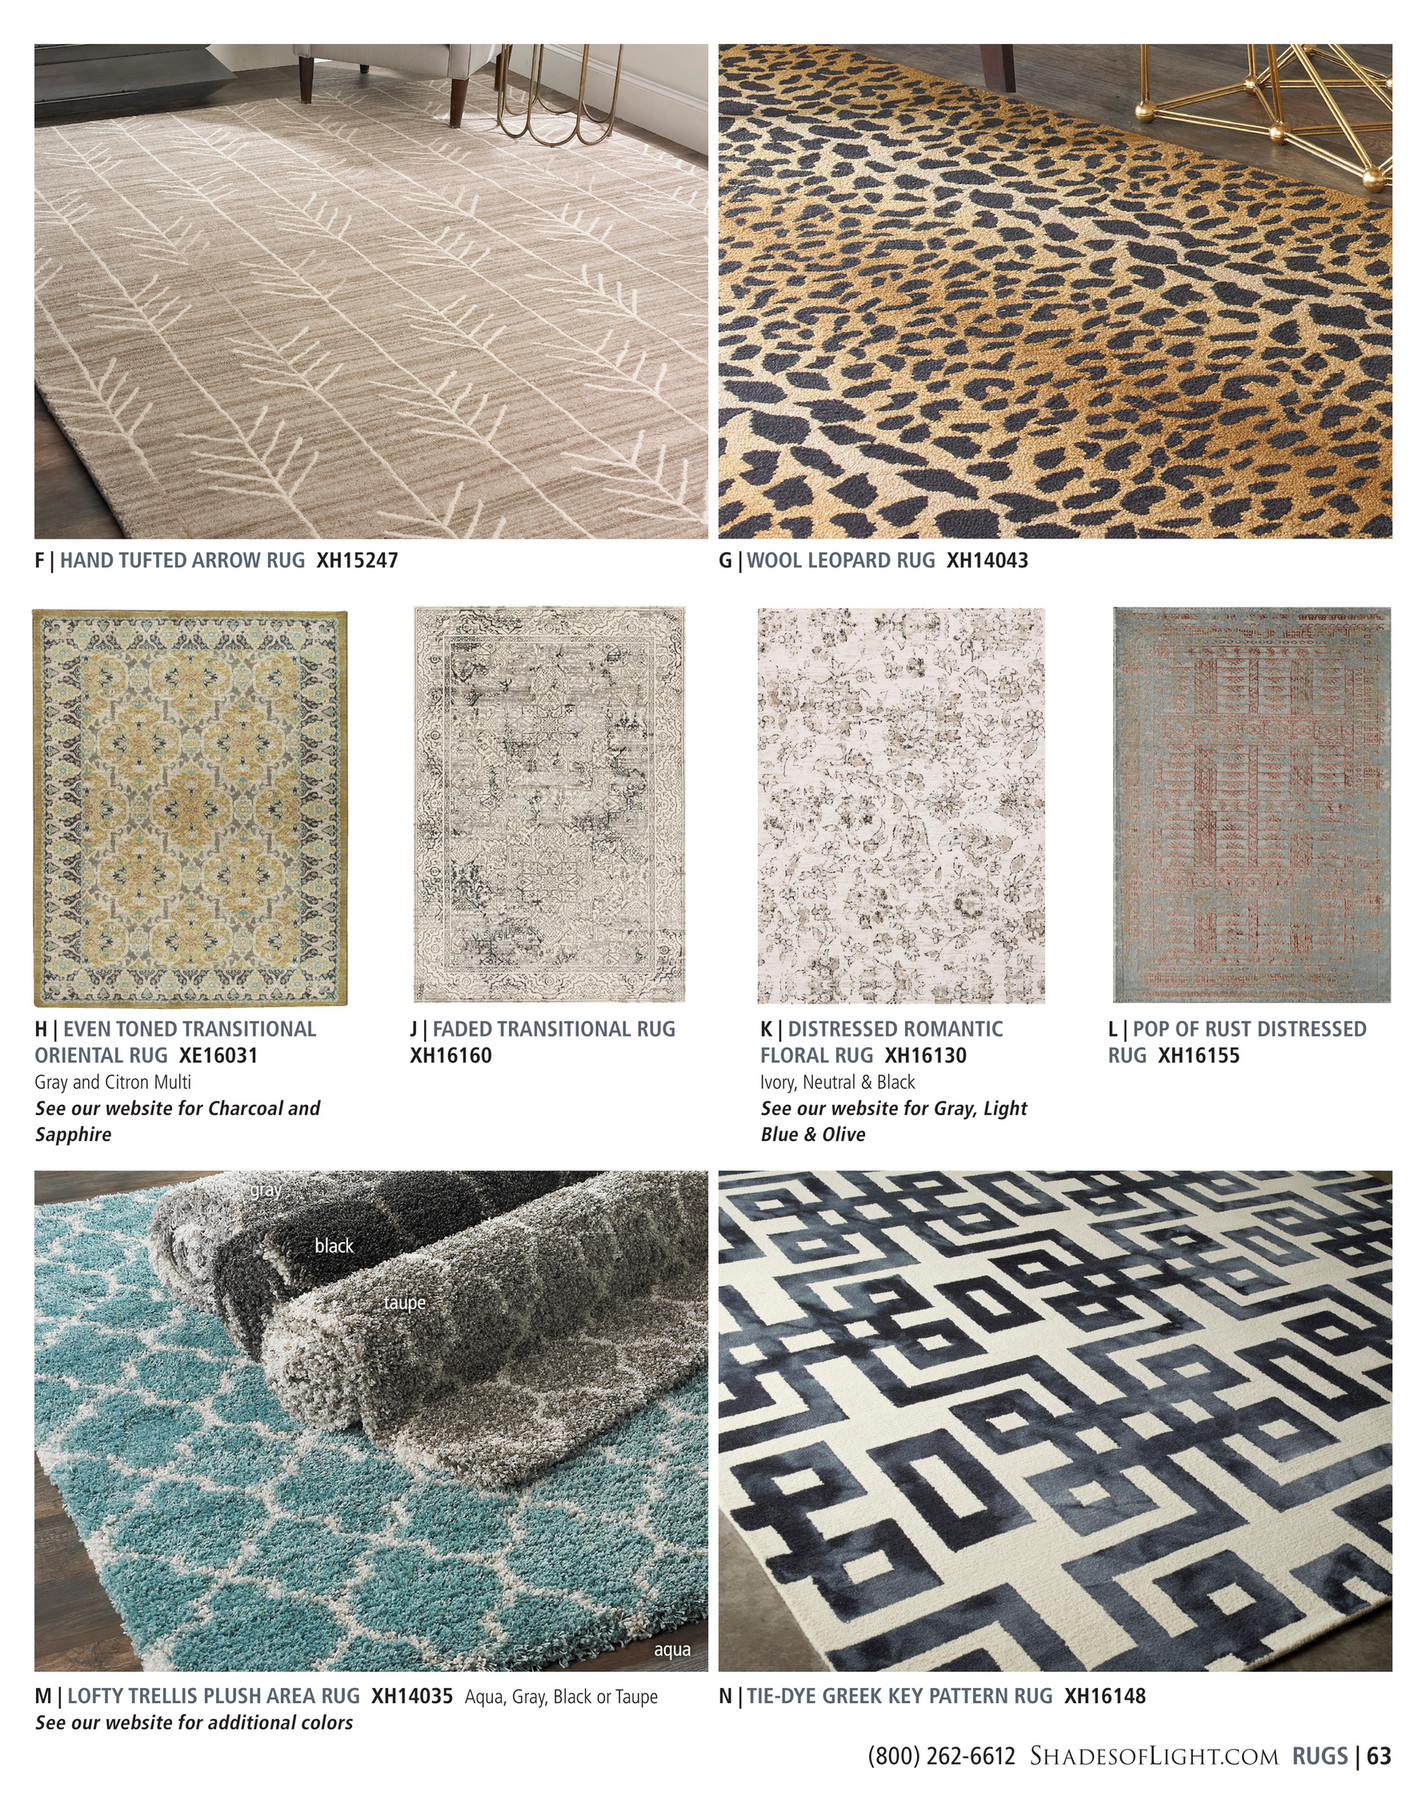 (800) 262 6612 ShadesofLight.com RUGS | 63